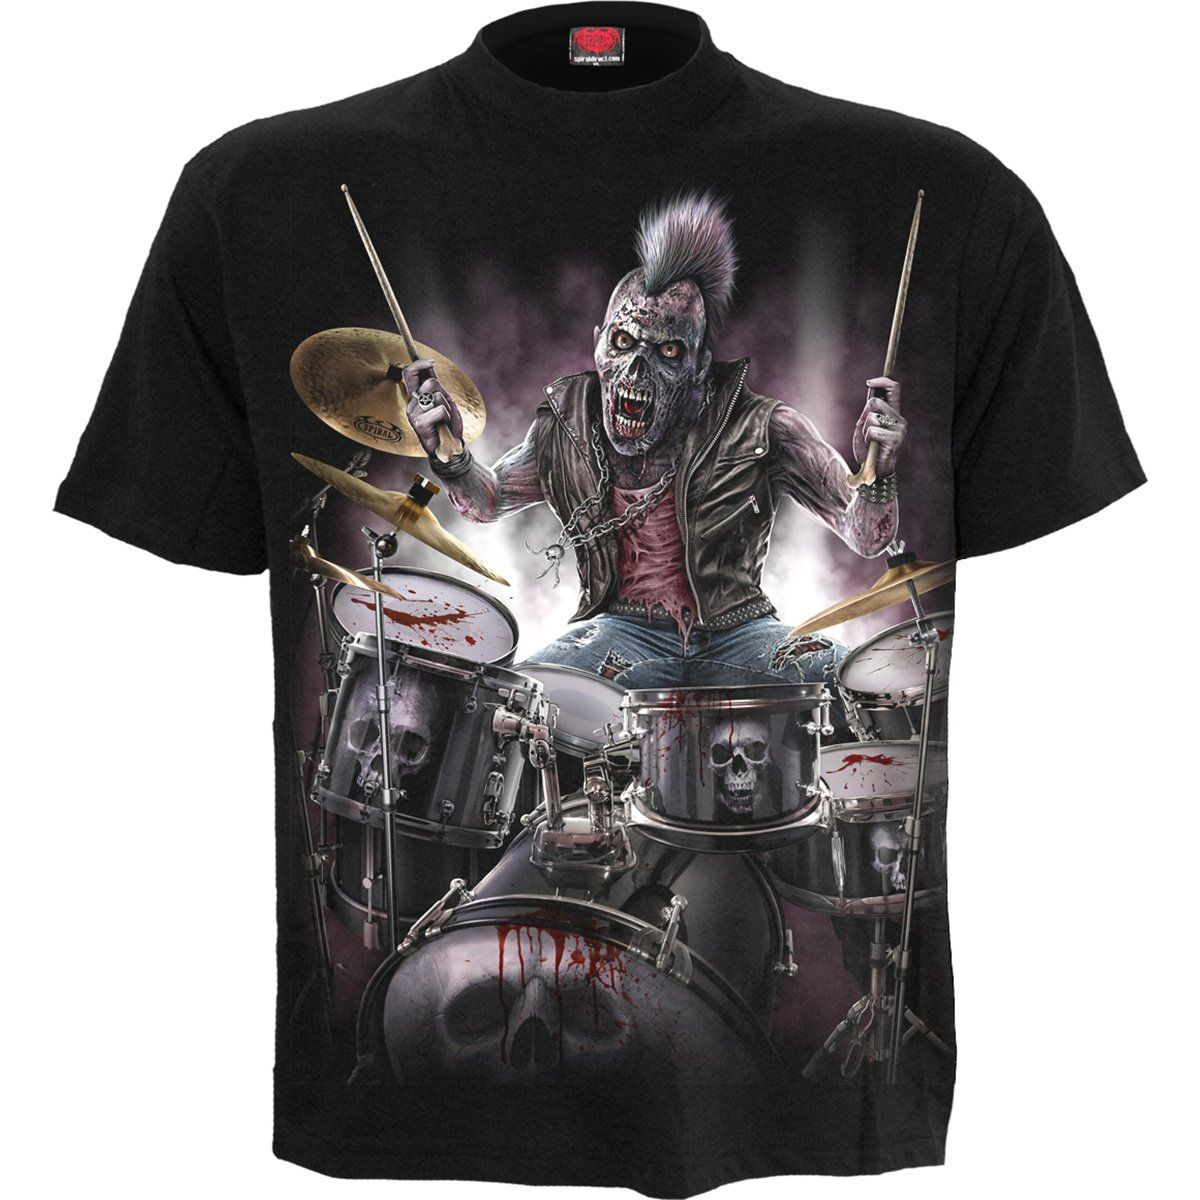 Zombie Drummer Men's Black T-Shirt